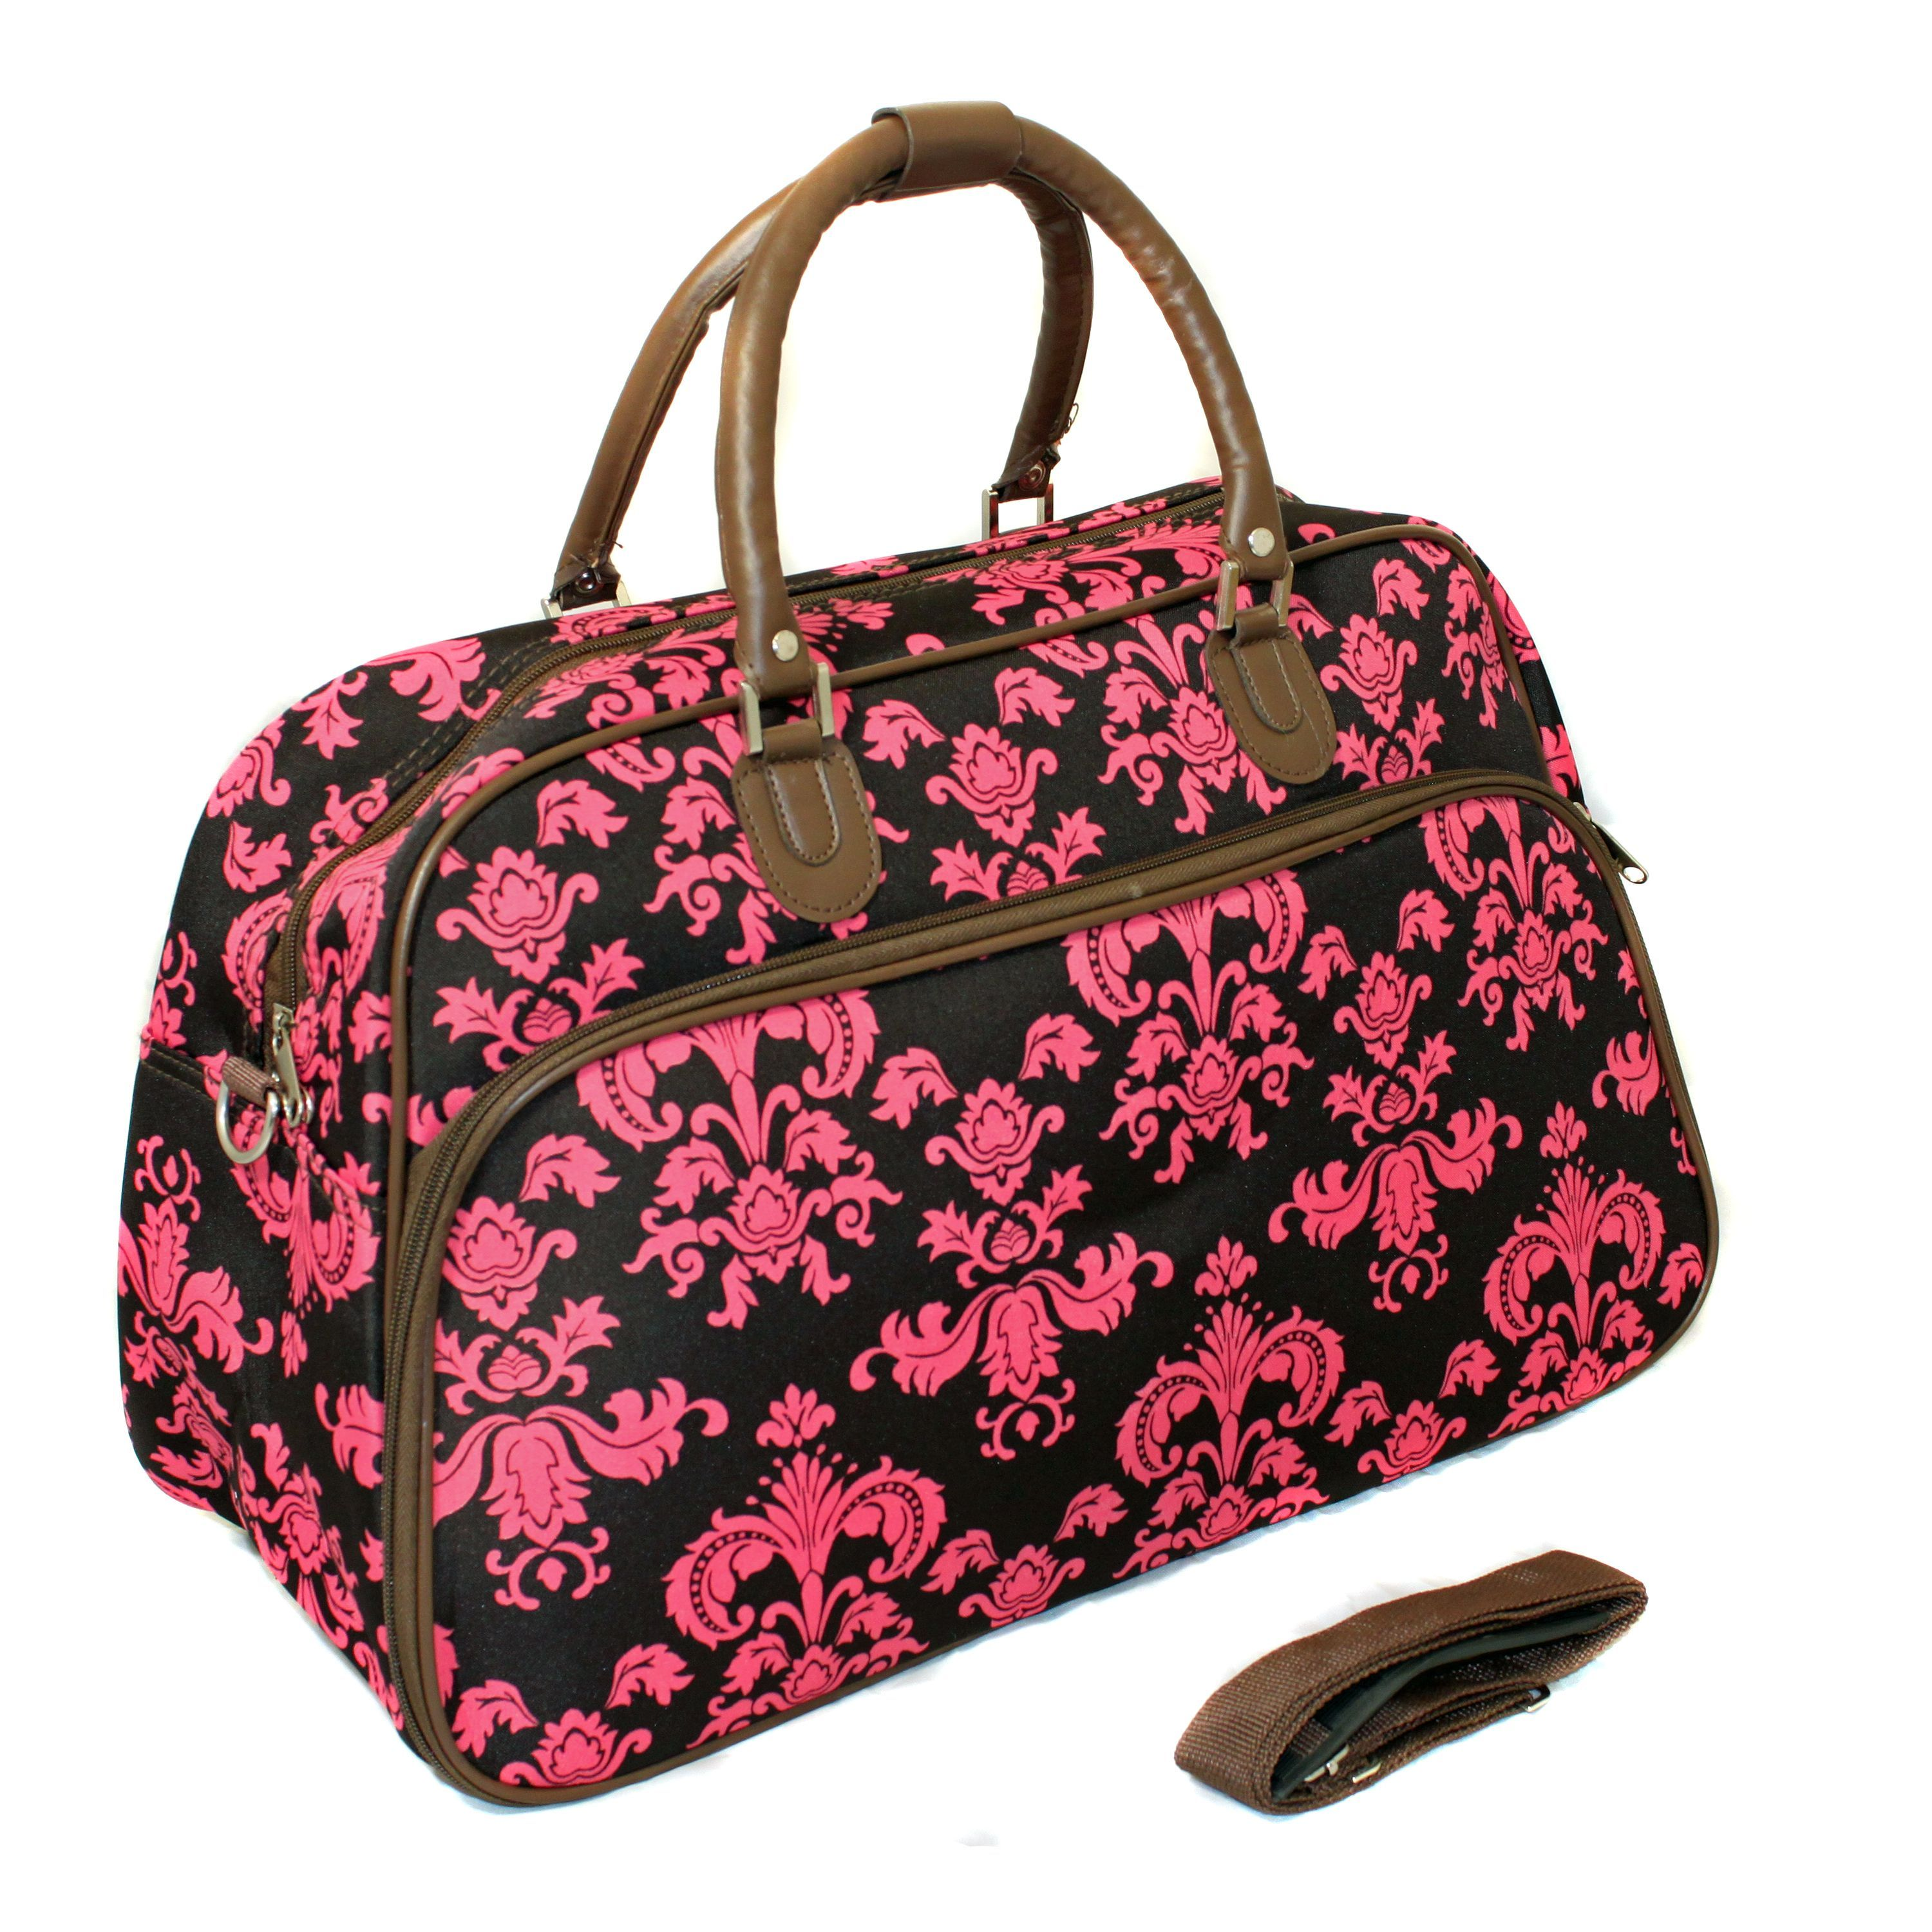 4243abe0a2e4 World Traveler Fashion Travel Damask 21-inch Carry On Shoulder Tote ...